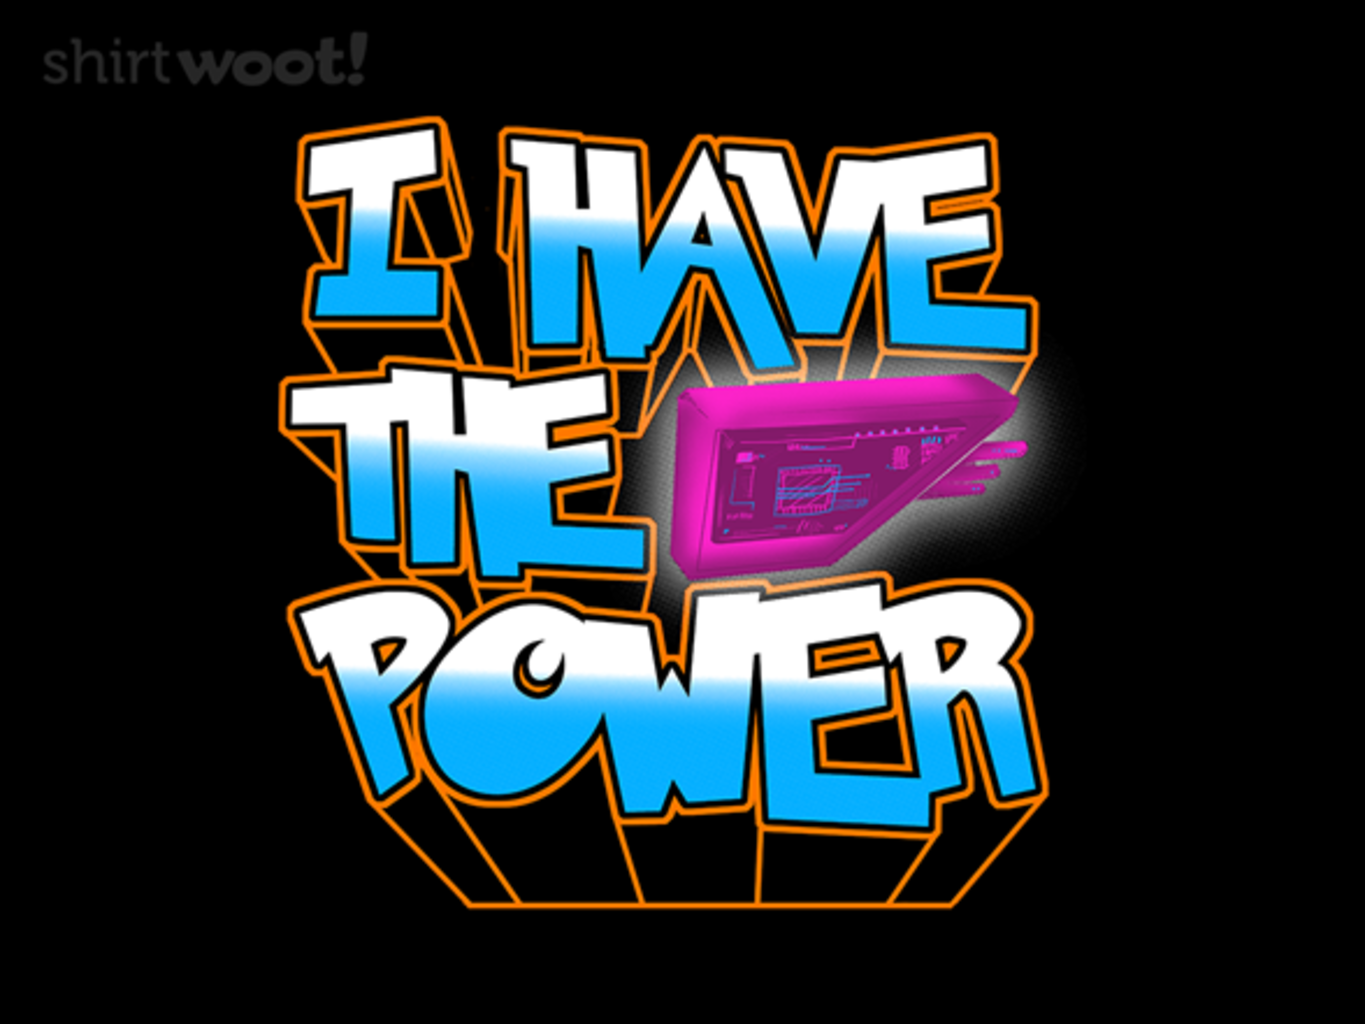 Woot!: I Have the Power - $8.00 + $5 standard shipping